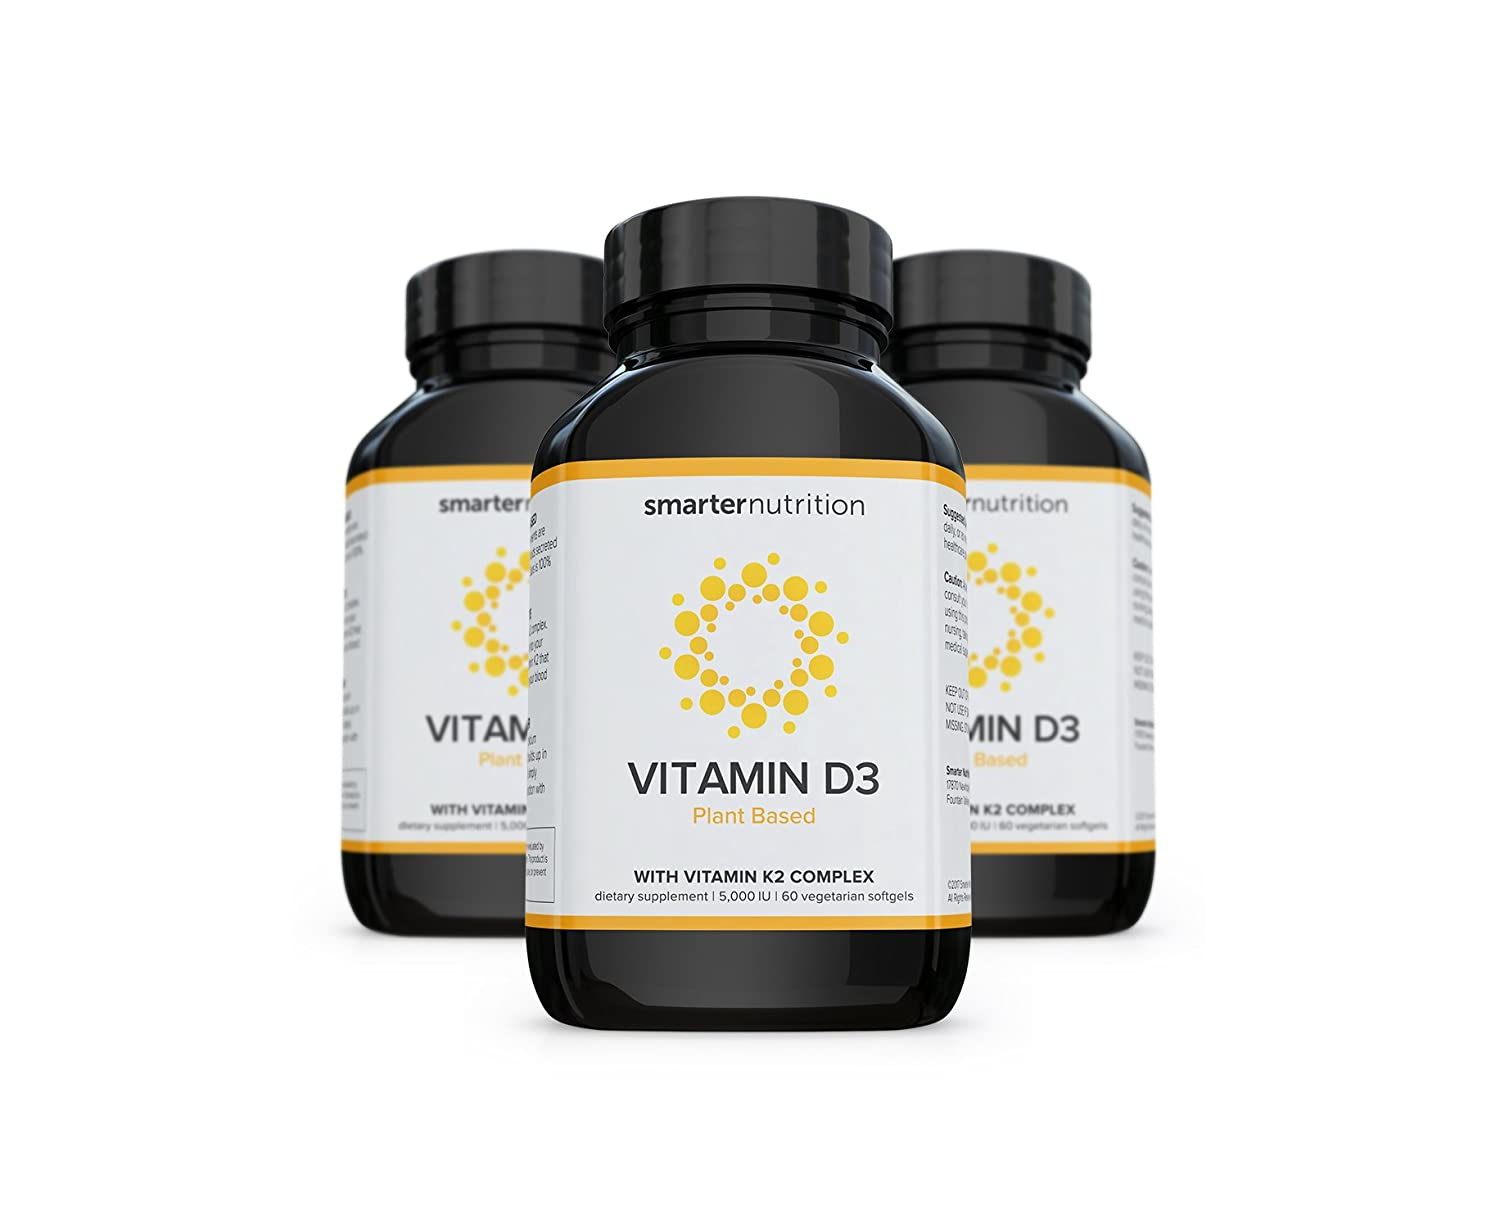 Amazon.com: Smarter Nutrition Plant-Based Vitamin D3 with K2 Complex for Healthy Bones and Arteries, Vegetarian Softgels (6 Month Supply): Health & Personal ...